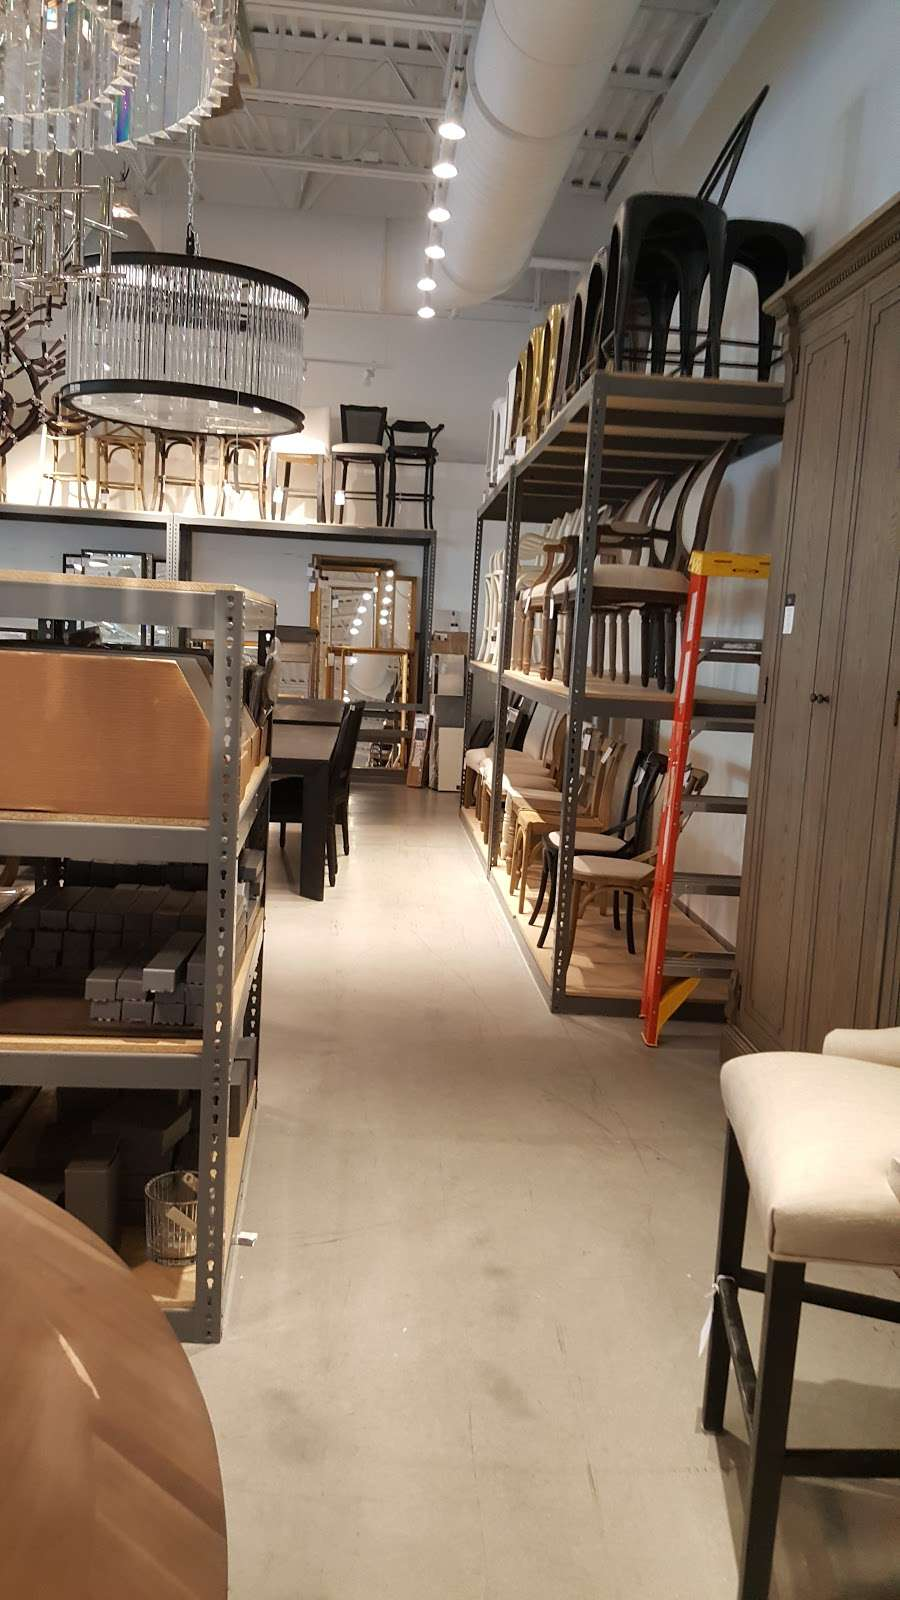 Restoration Hardware Outlet - furniture store  | Photo 1 of 10 | Address: 18 West Lightcap Rd Suite 501, Sanatoga, PA 19464, USA | Phone: (610) 970-1518